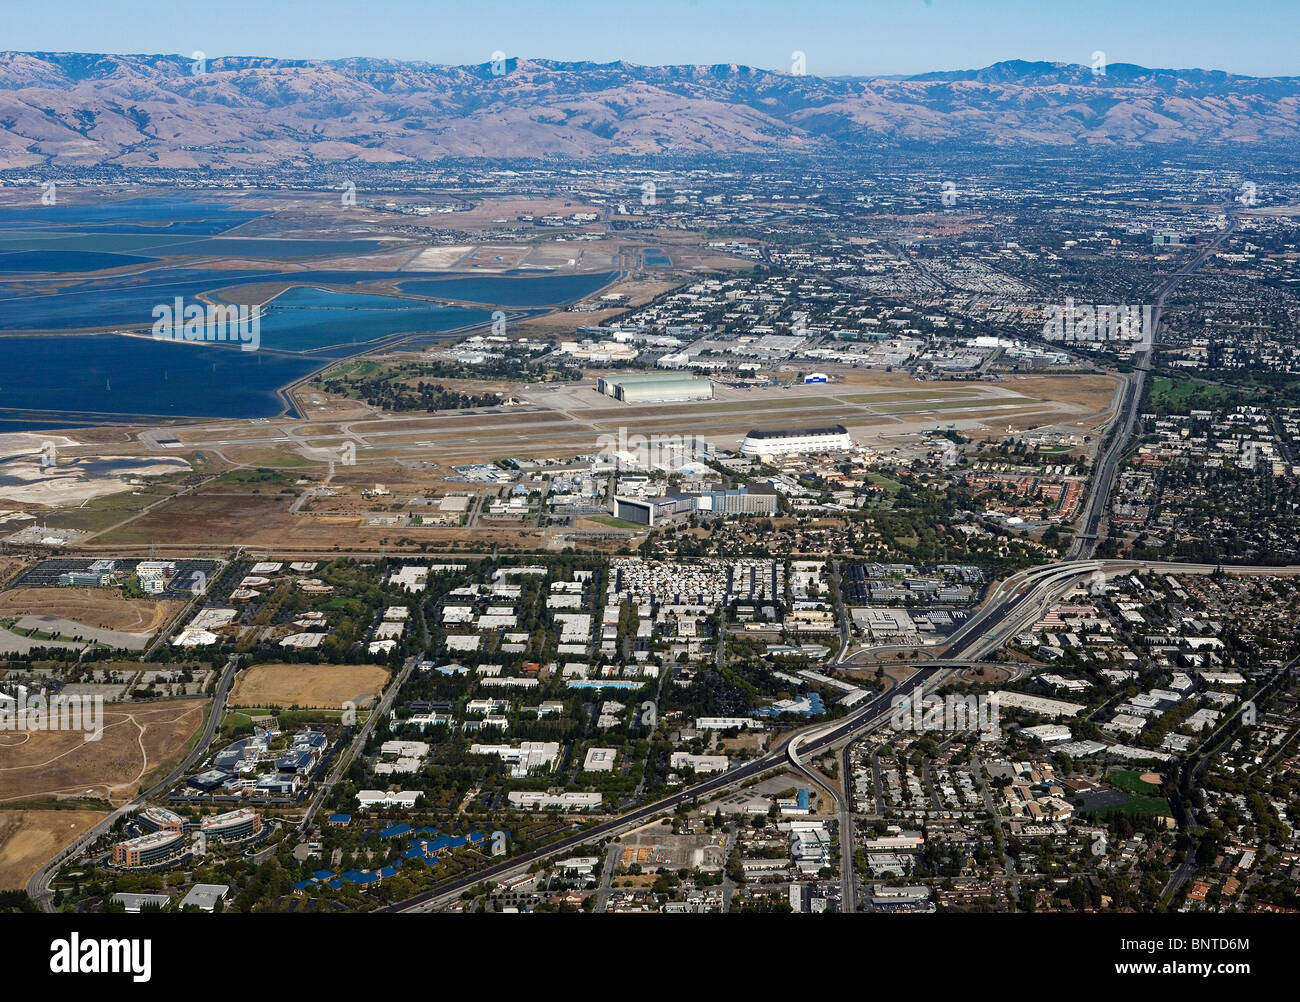 aerial view above Silicon Valley from Mountain View California - Stock Image